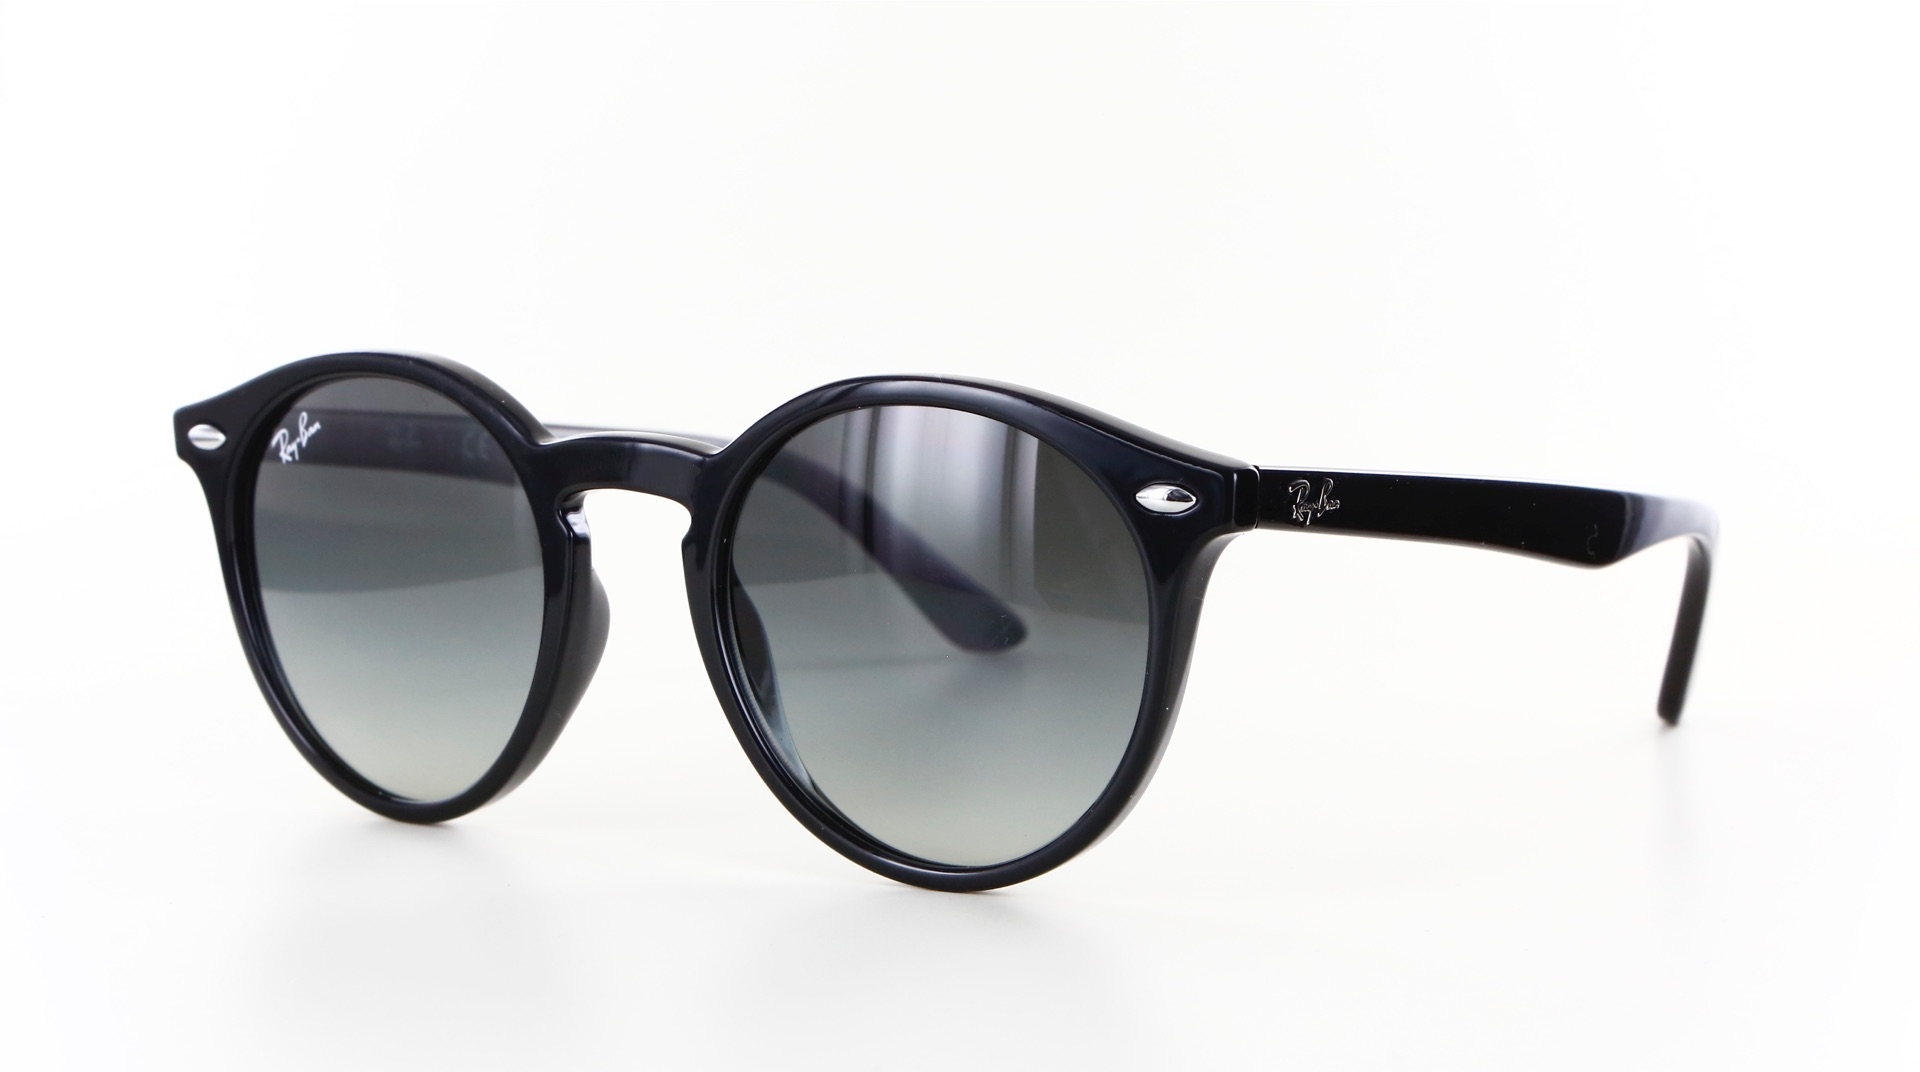 Ray-Ban - ref: 76904